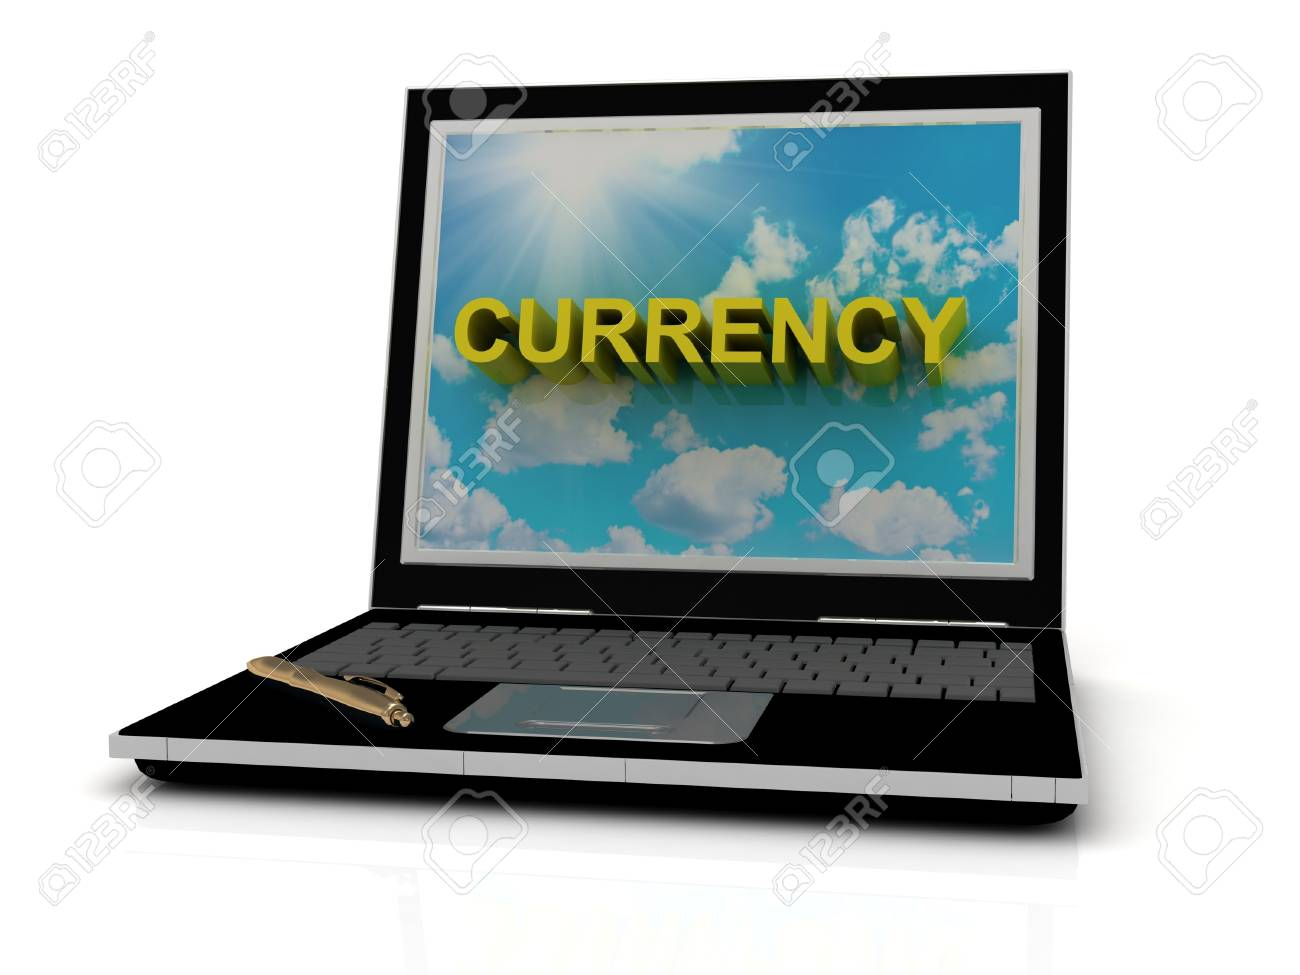 CURRENCY sign on laptop screen of the yellow letters on a background of sky, sun and clouds Stock Photo - 14861302